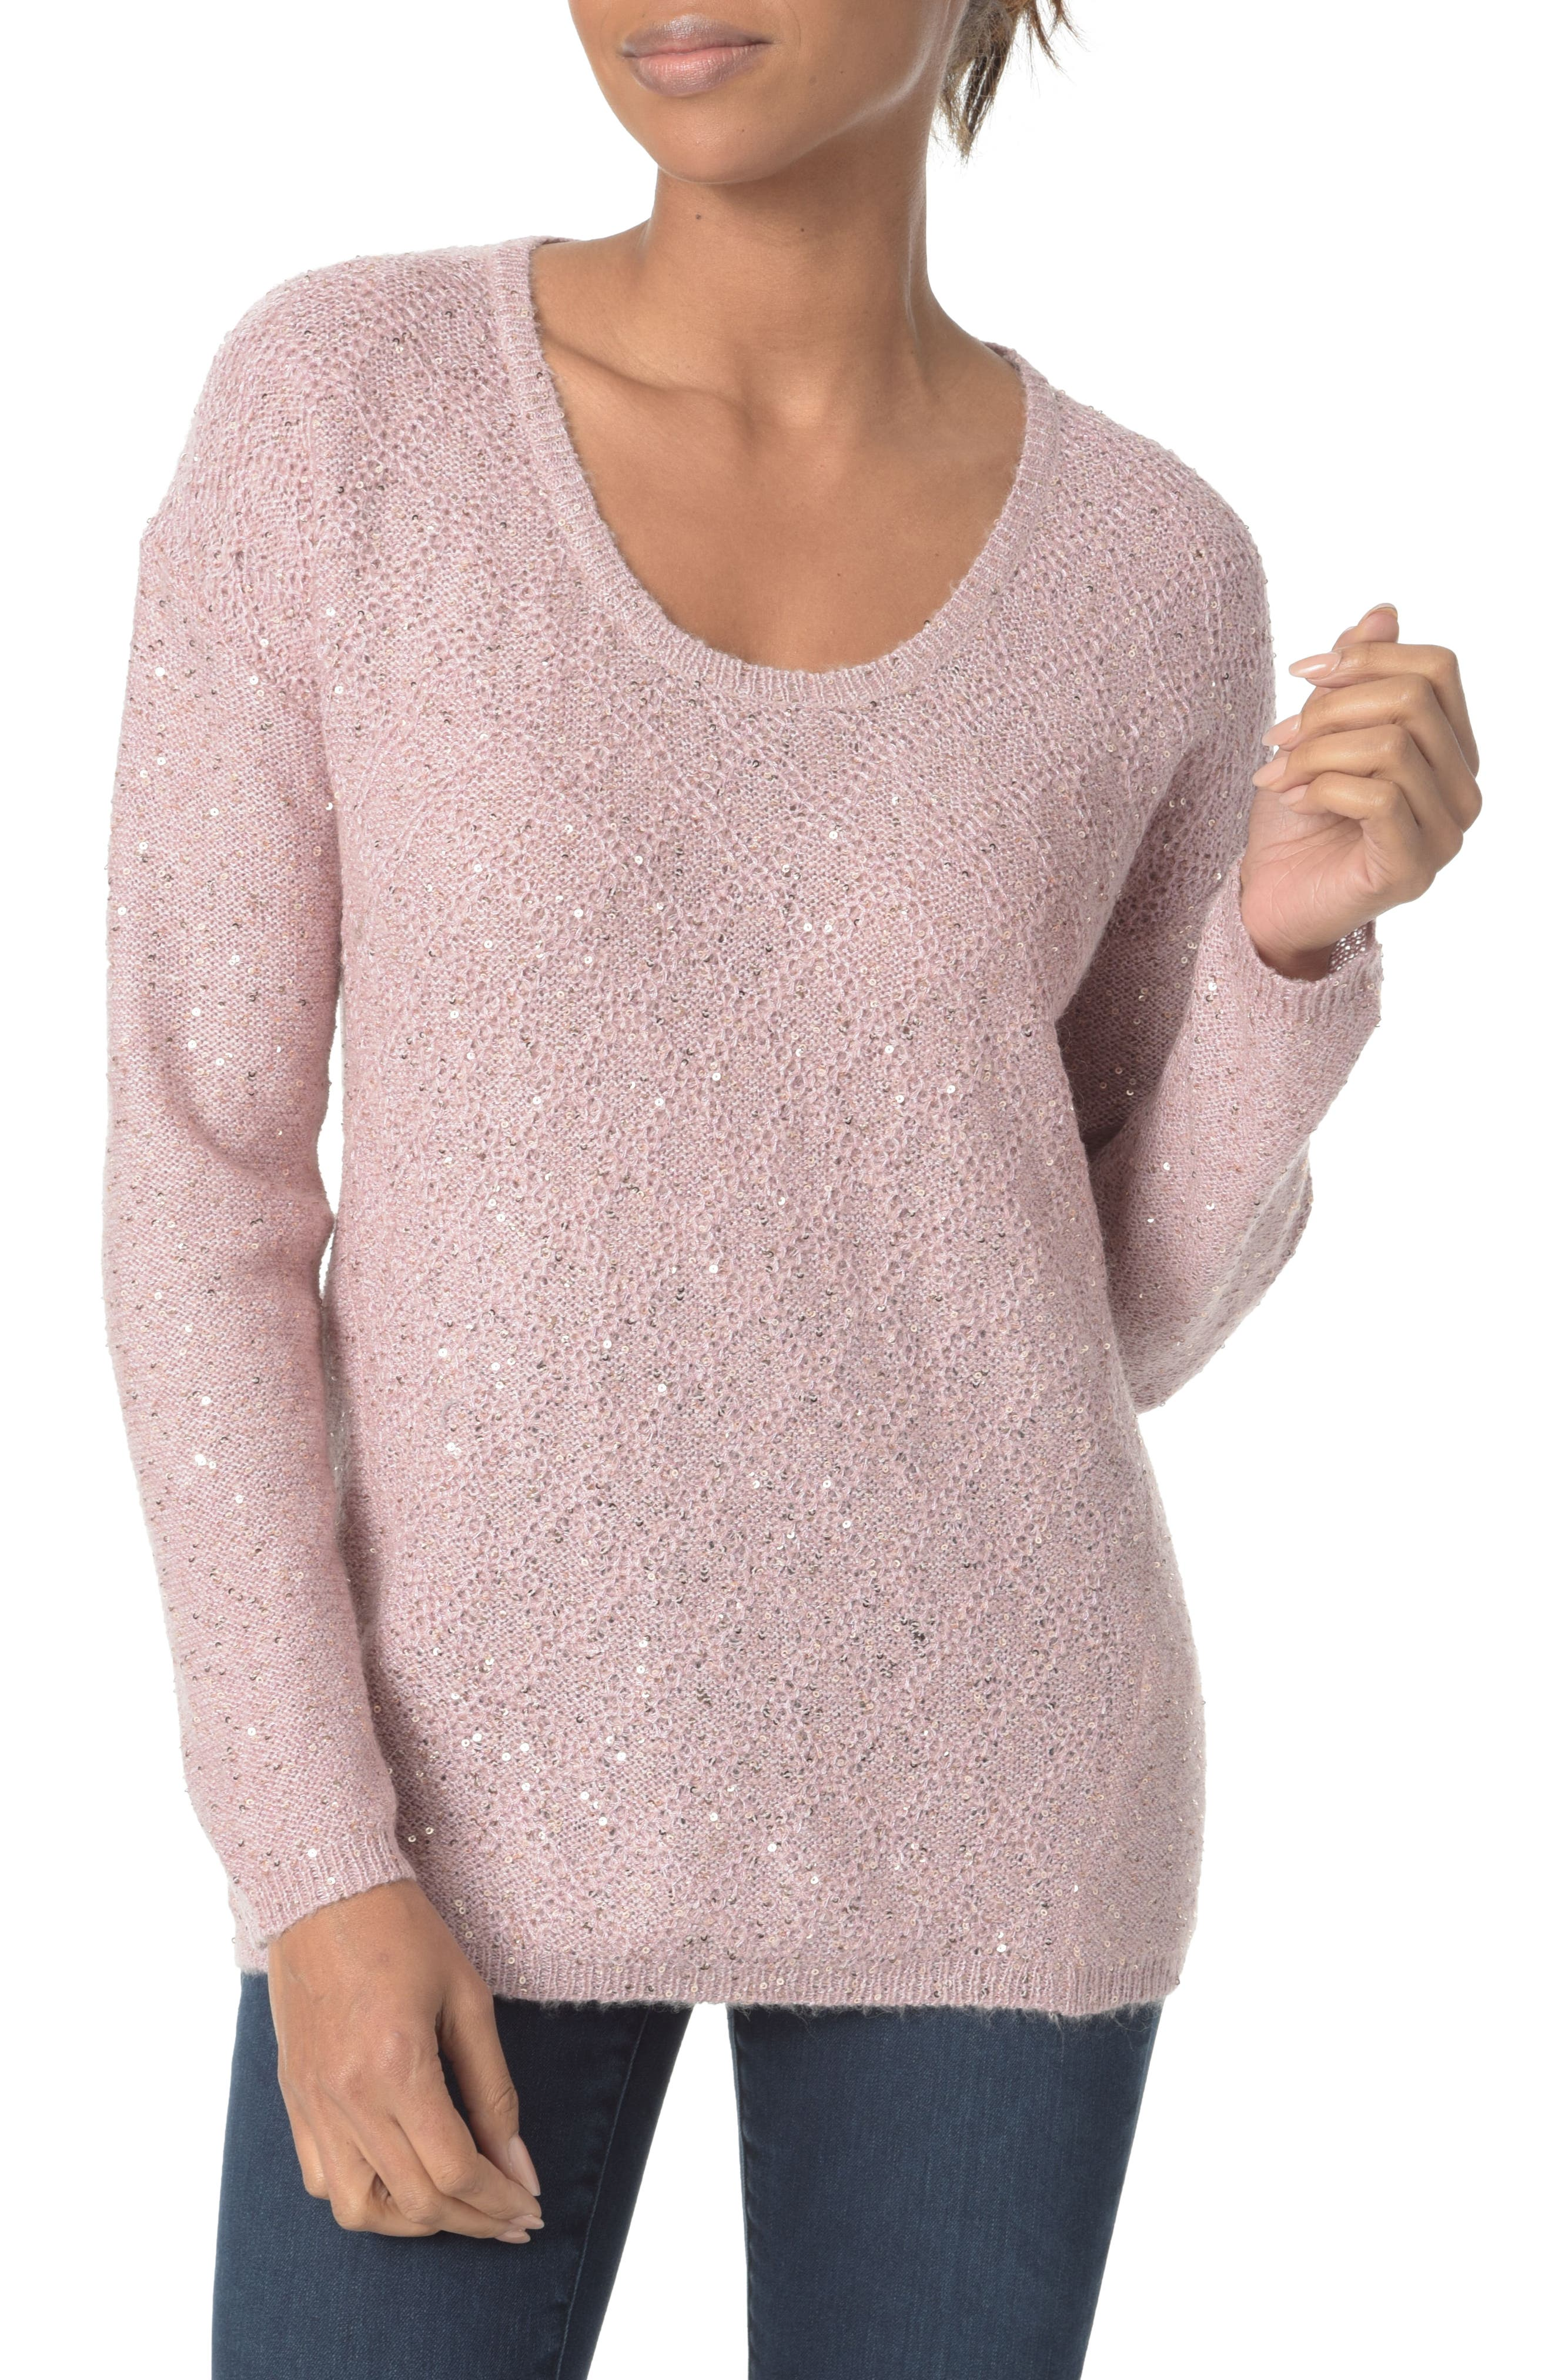 Main Image - NYDJ Sequin Scoop Neck Sweater